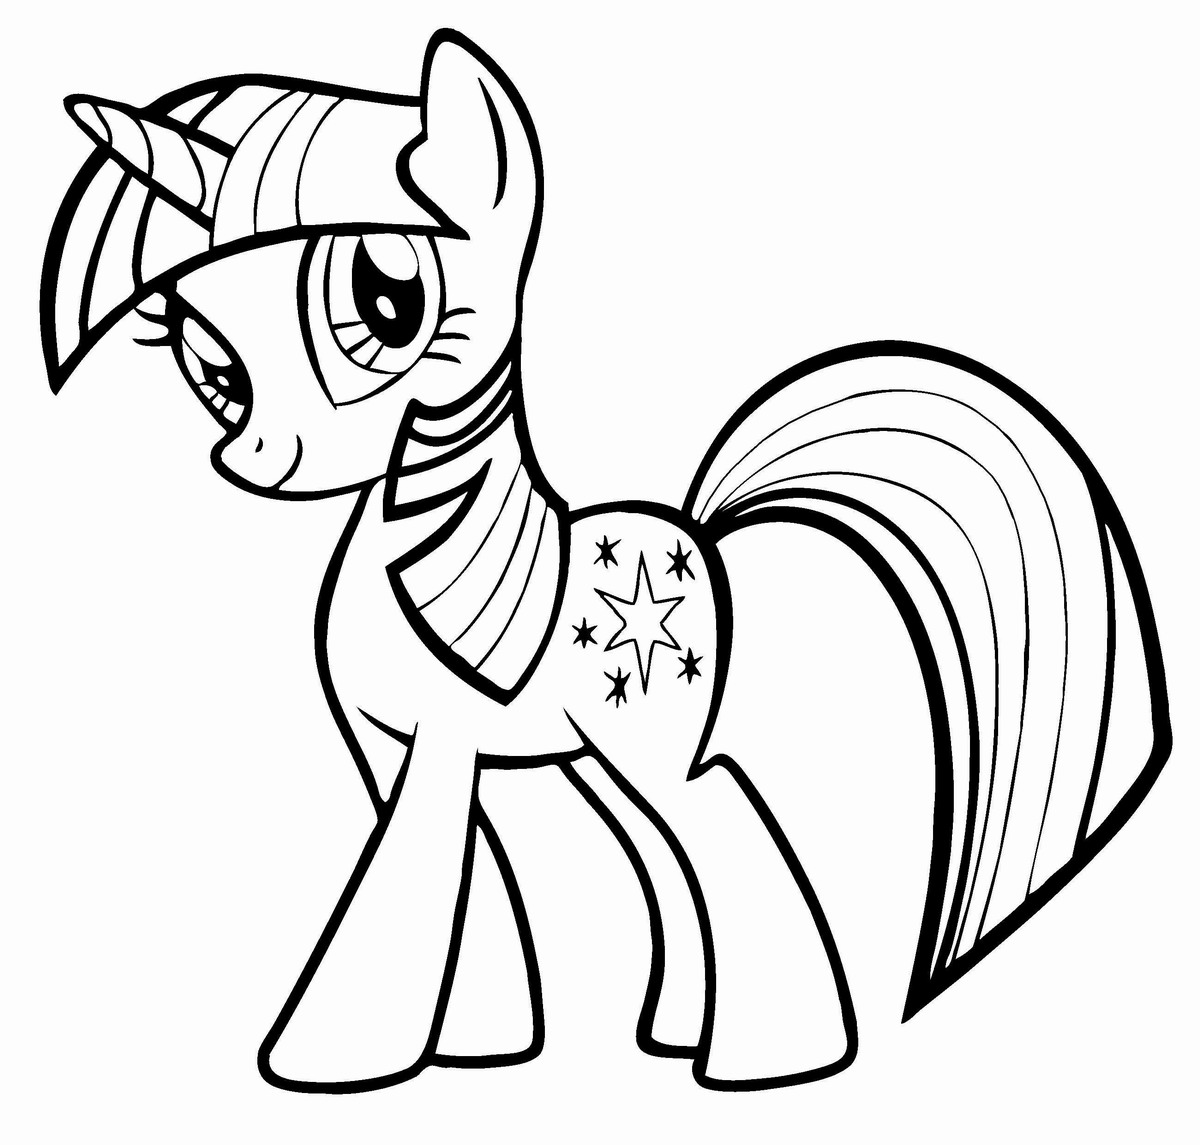 my little pony coloring pages my little pony coloring page coloring home pages little my pony coloring